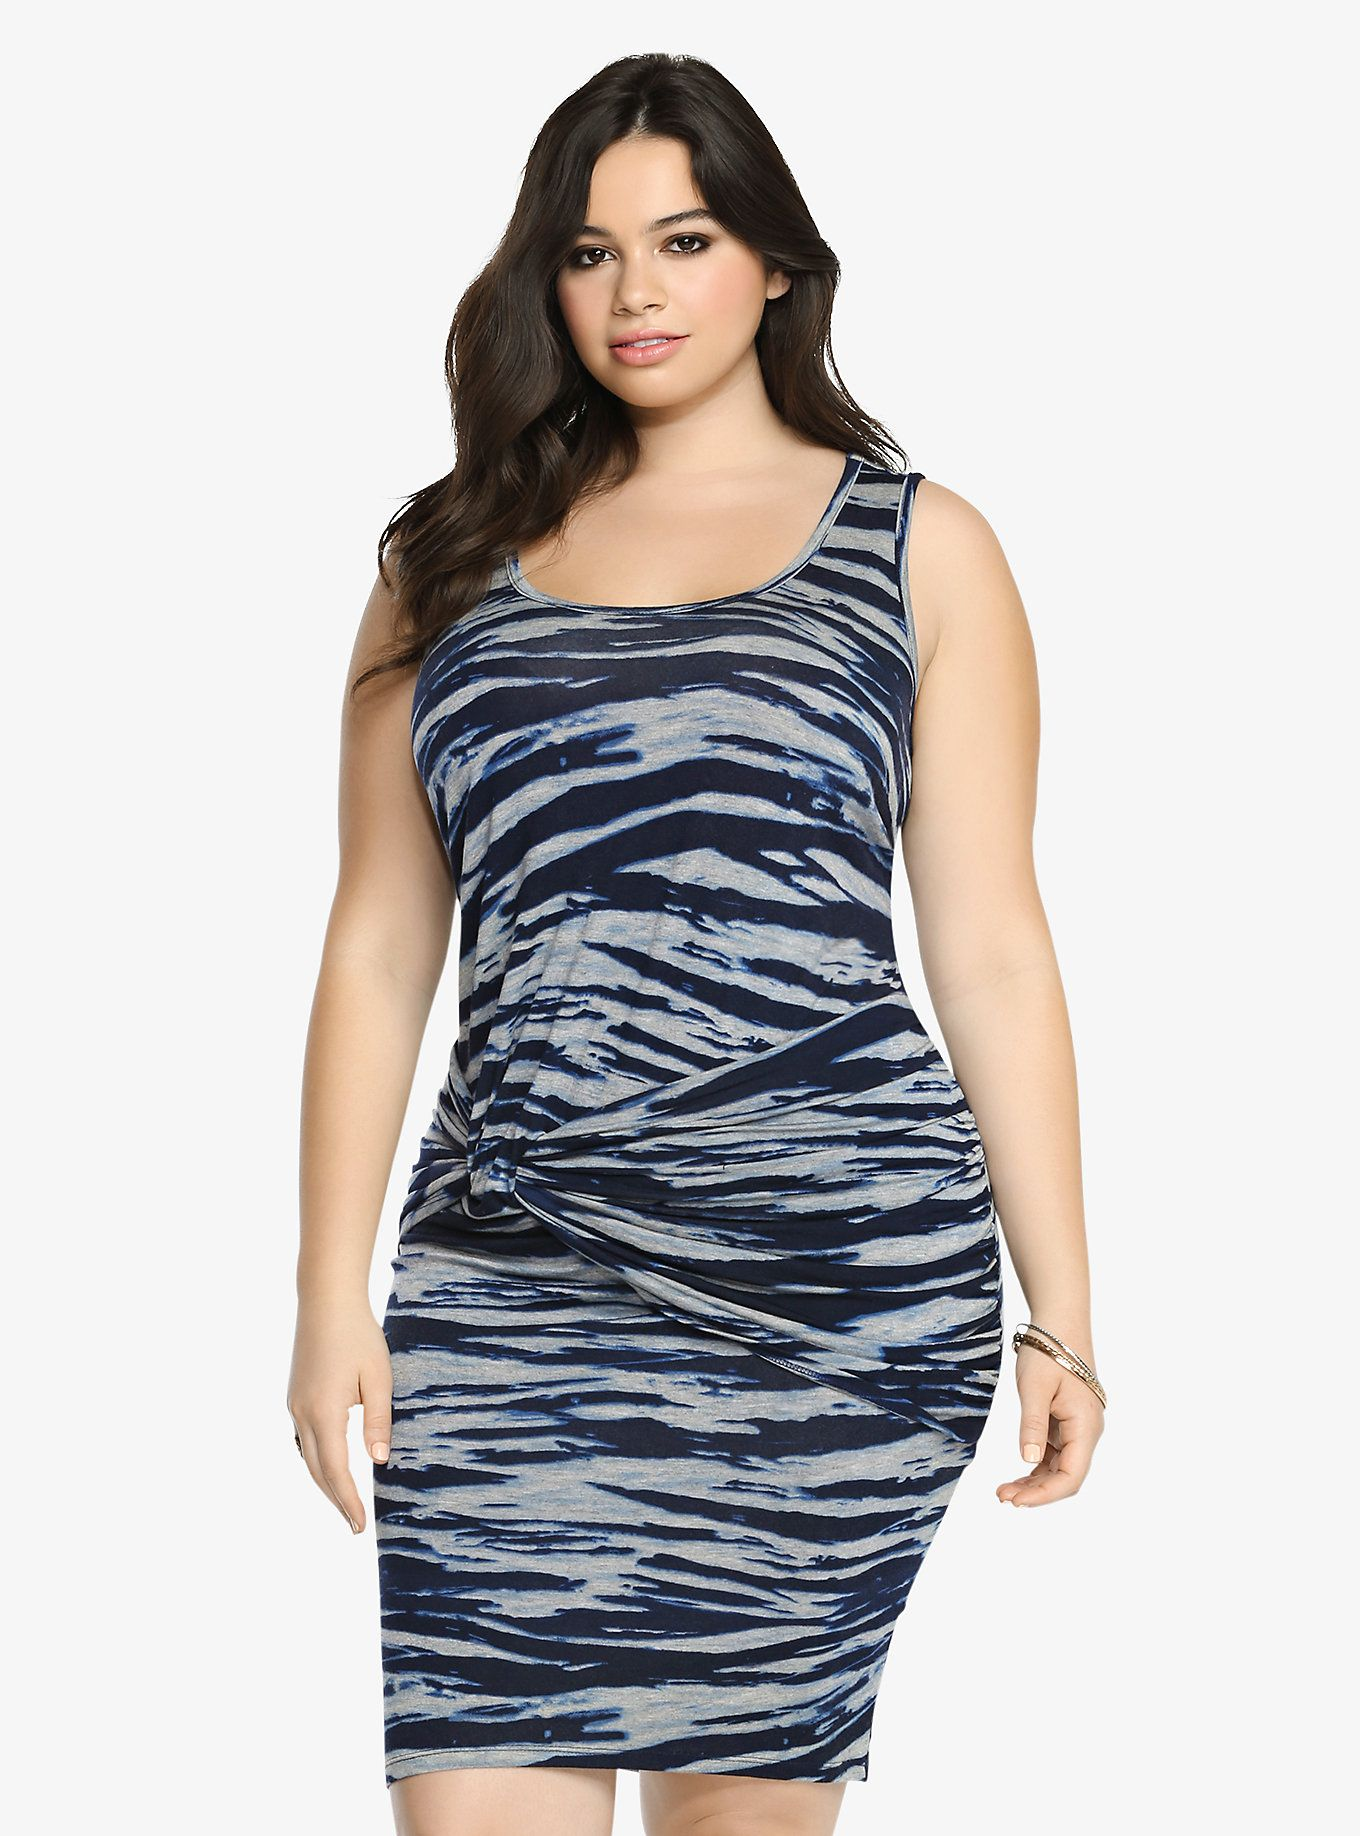 bdc87c534e938 Tie-Dye Knot Tank Dress Found on Torrid. Time to tie the knot. This blue  tie-dye beauty is ready to be all yours! It s a cool